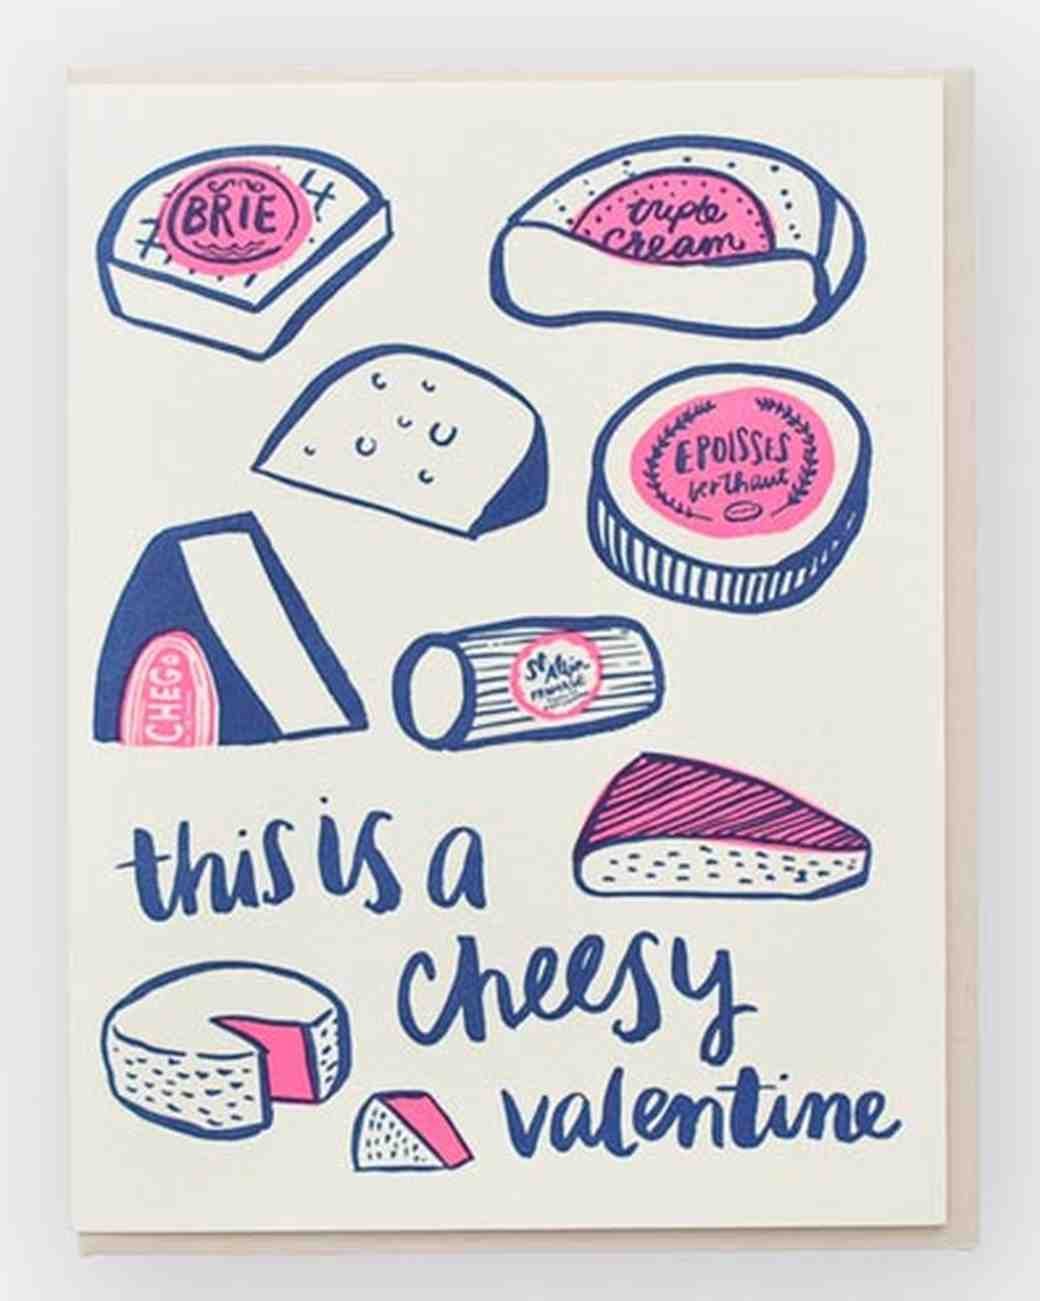 vday-cards-we-love-hello-lucky-cheesy-valentine-0216.jpg